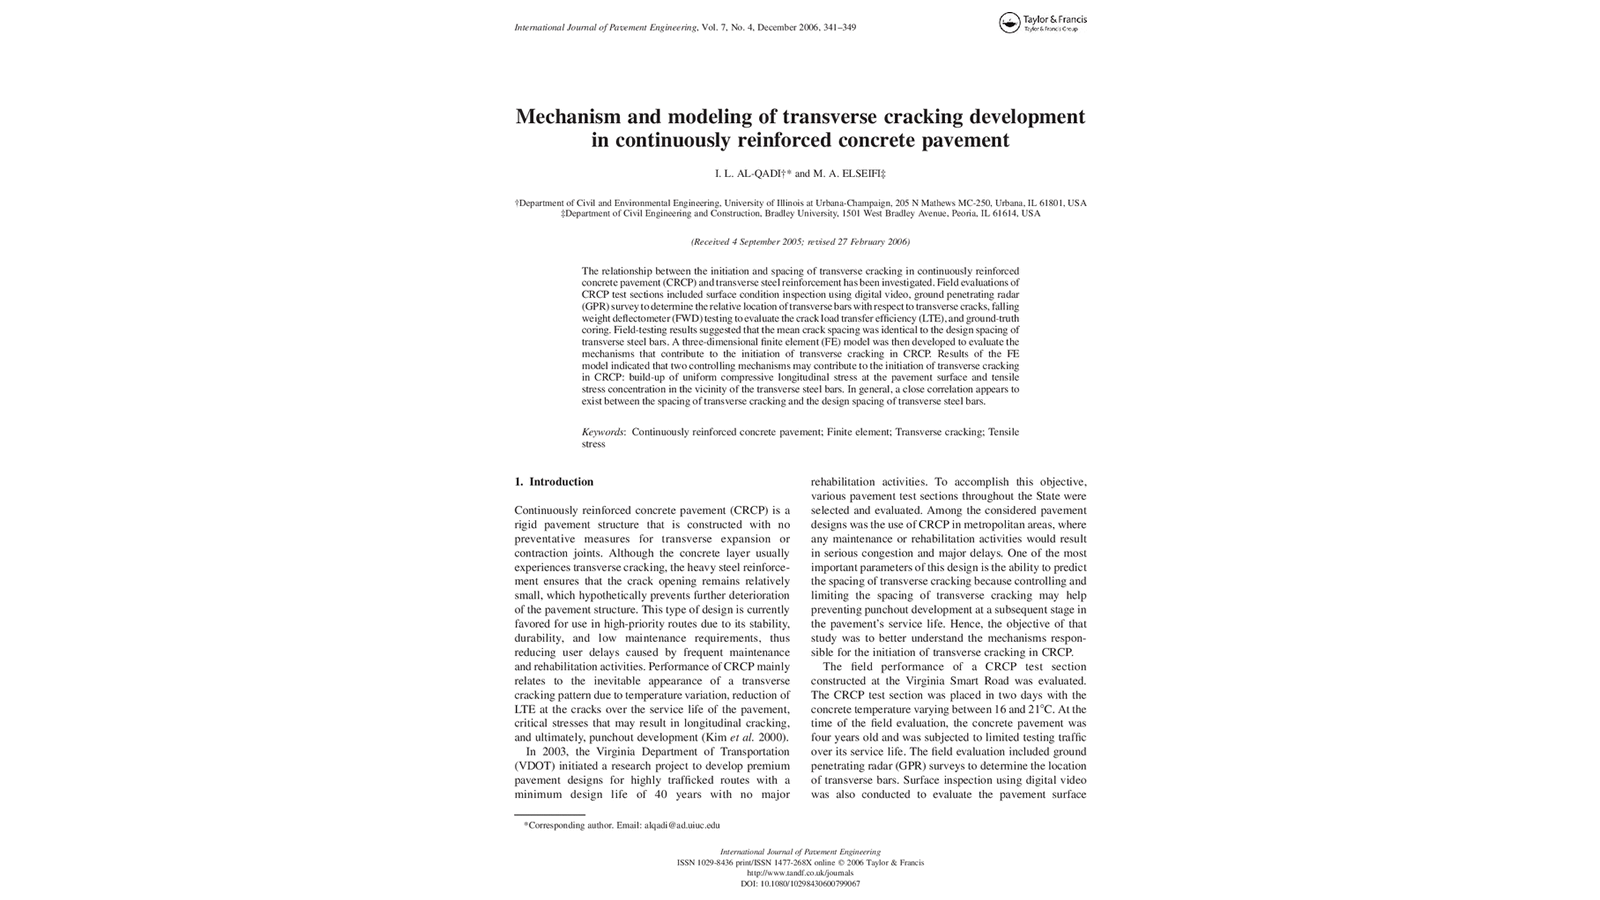 Mechanism and Modeling of Transverse Cracking Development in Continuously Reinforced Concrete Pavement